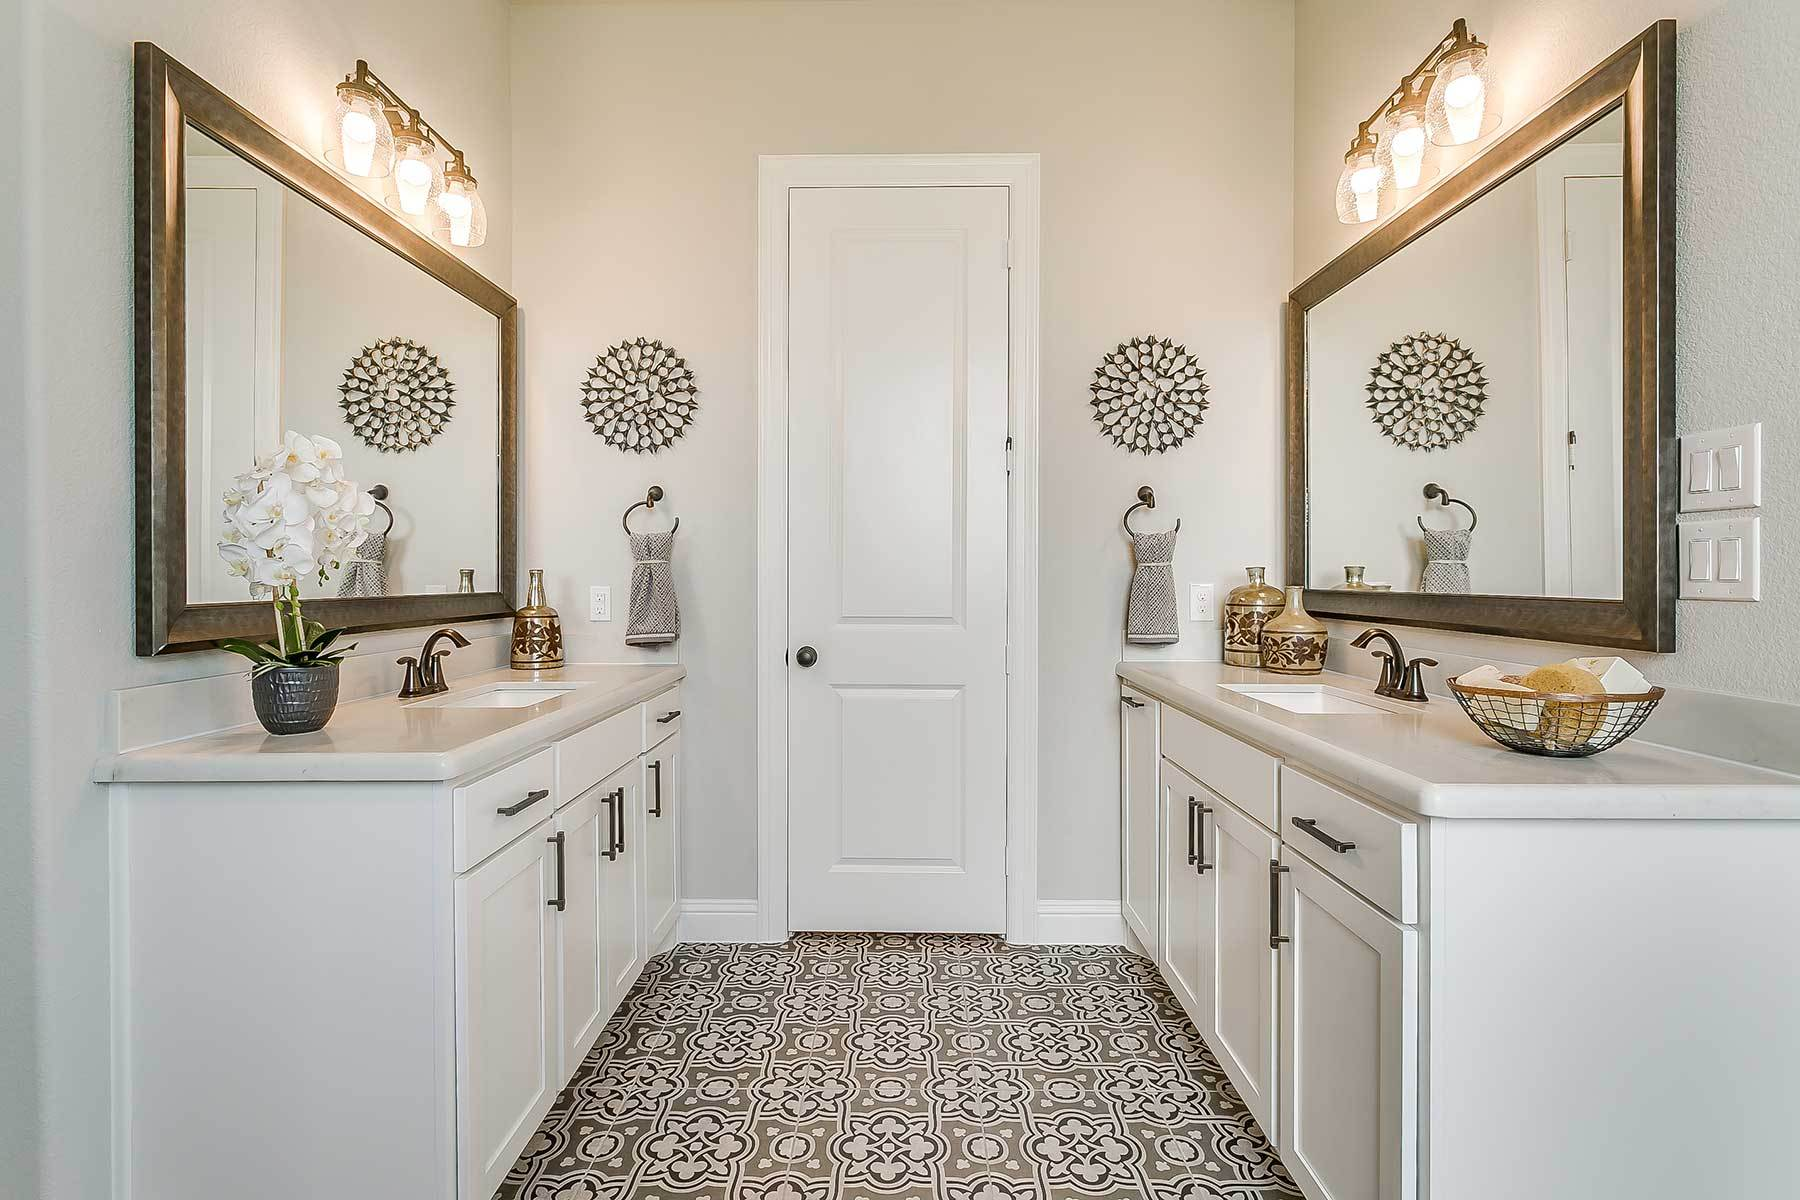 Bathroom featured in the Westridge By M/I Homes in Dallas, TX